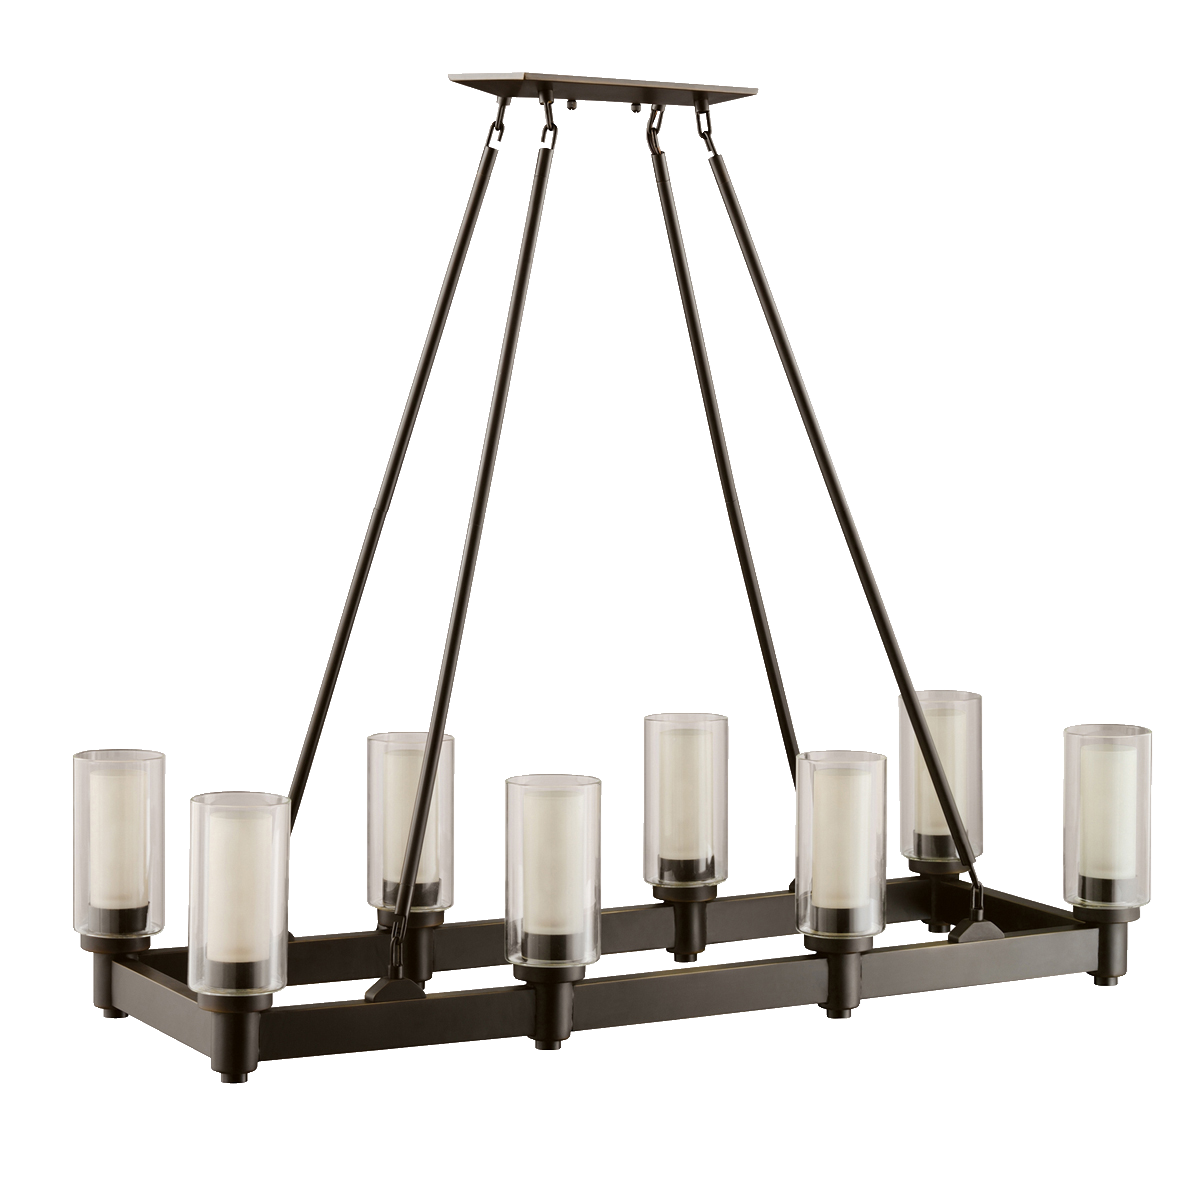 Rectangular dining room chandeliers - 8 Light Linear Chandelier In Olde Bronze Circolo Collection Kichler Lighting Pendant